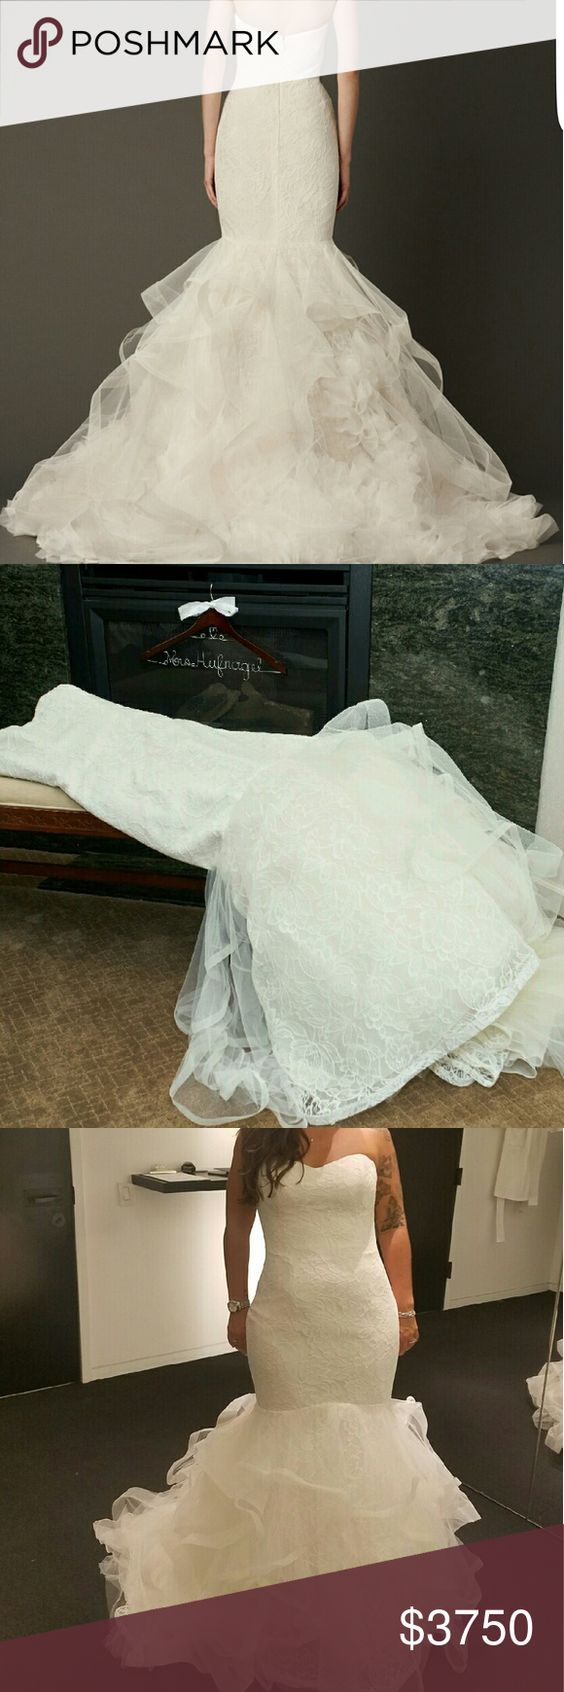 """Vera Wang, Lillian, Size 6/8 WORN ONLY FOR A FEW HOURS ON WEDDING DAY.  LABEL SIZE 8, I AM A SIZE 6. MINIMAL ALTERATIONS (CUPS ADDED & BUTTONS ADDED DOWN ZIPPER LINE). INCLUDING MATCHING """"KATARINA"""" VEIL ($650).   From Vera: Tulip Chantilly lace mermaid gown with hand pieced circular flange train and mum garden hemline.  http://www.verawang.com/veraunveiled/2013/08/behind-the-dress-lillian/ Vera Wang Dresses Wedding"""